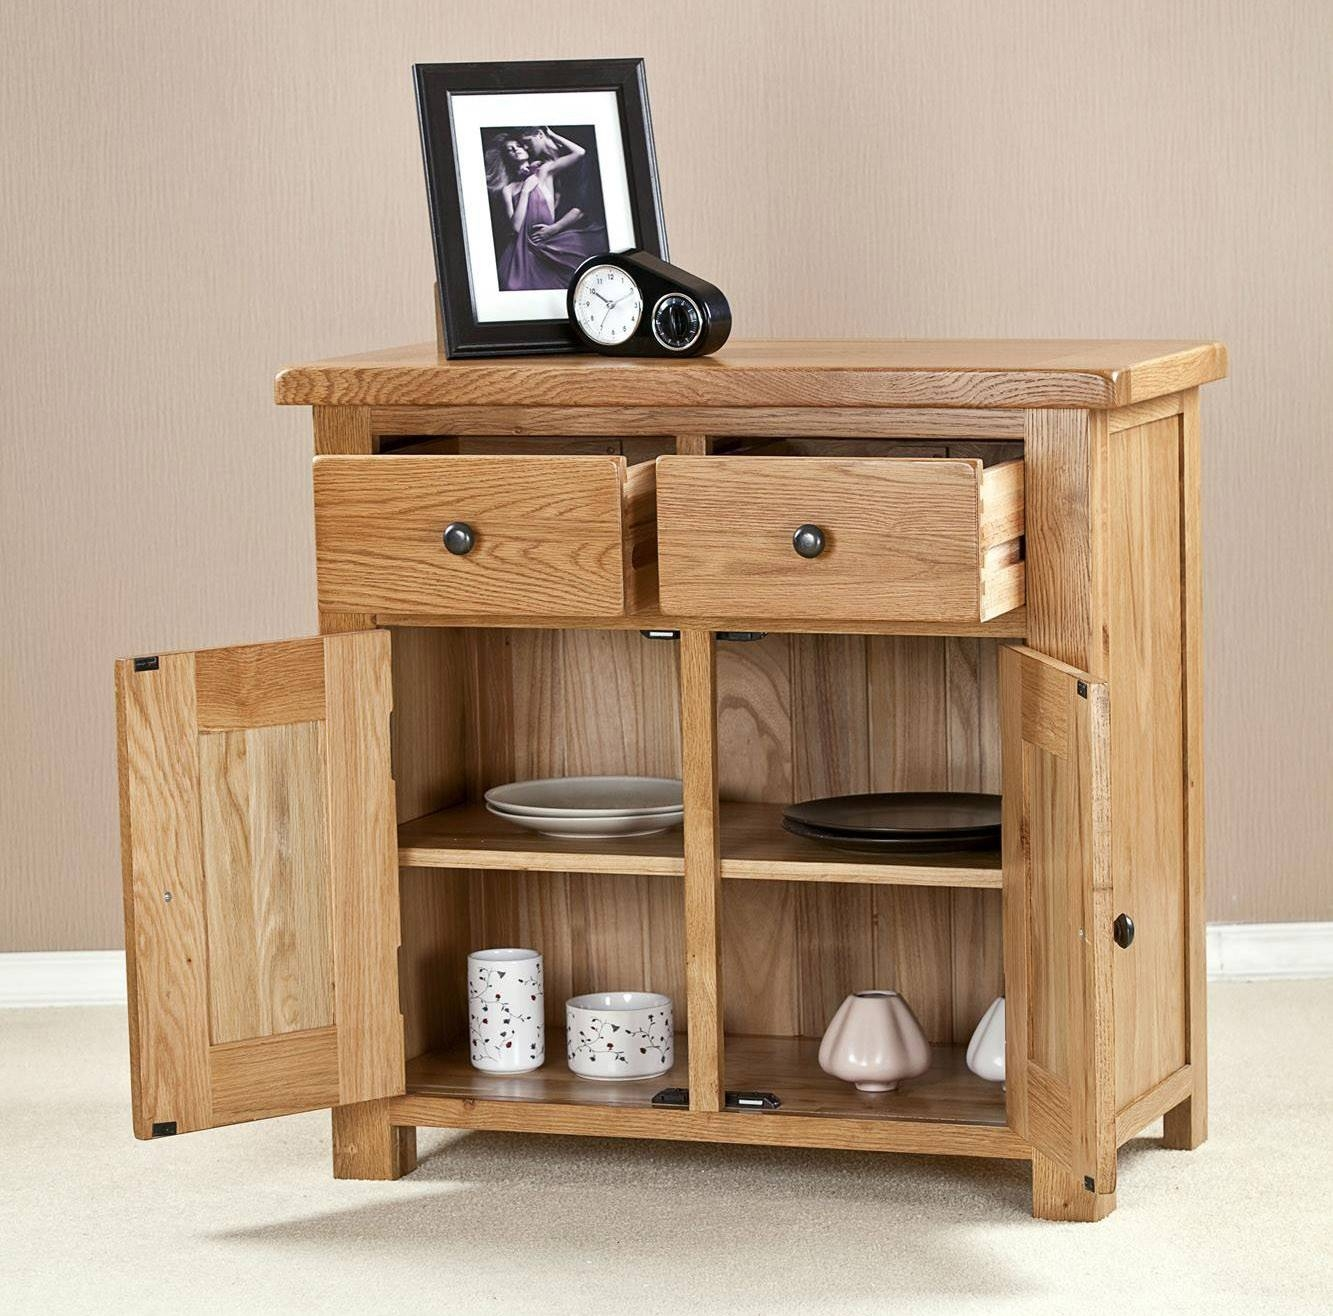 Cotswold Solid Oak 2 Door 2 Drawer Small Sideboard Pertaining To Small Sideboard With Drawers (View 3 of 20)